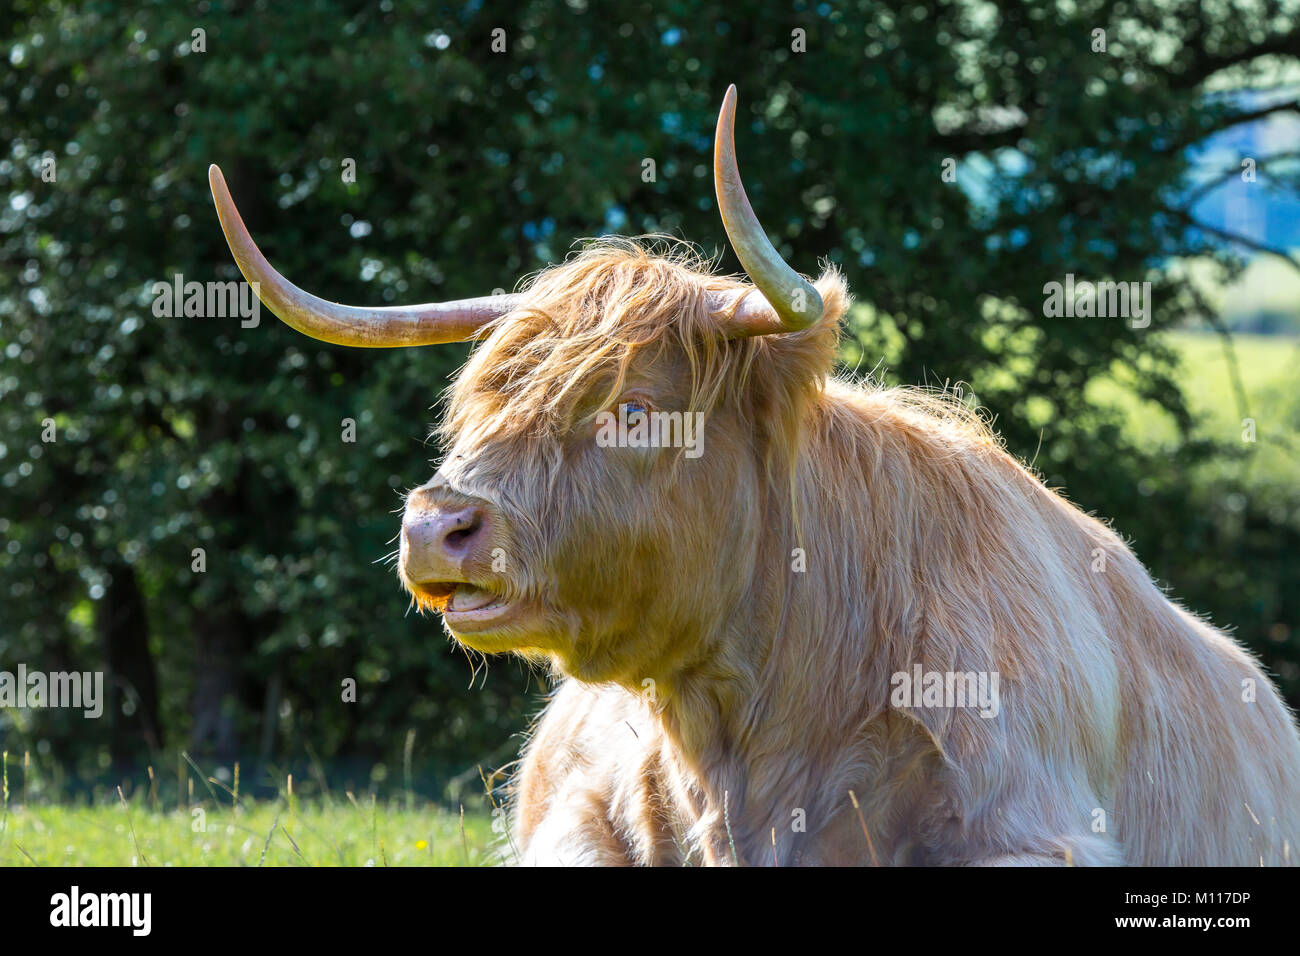 Detailed close up (head & shoulders) of magnificent Highland cow (bull) with large pointed horns sat in sunlit - Stock Image